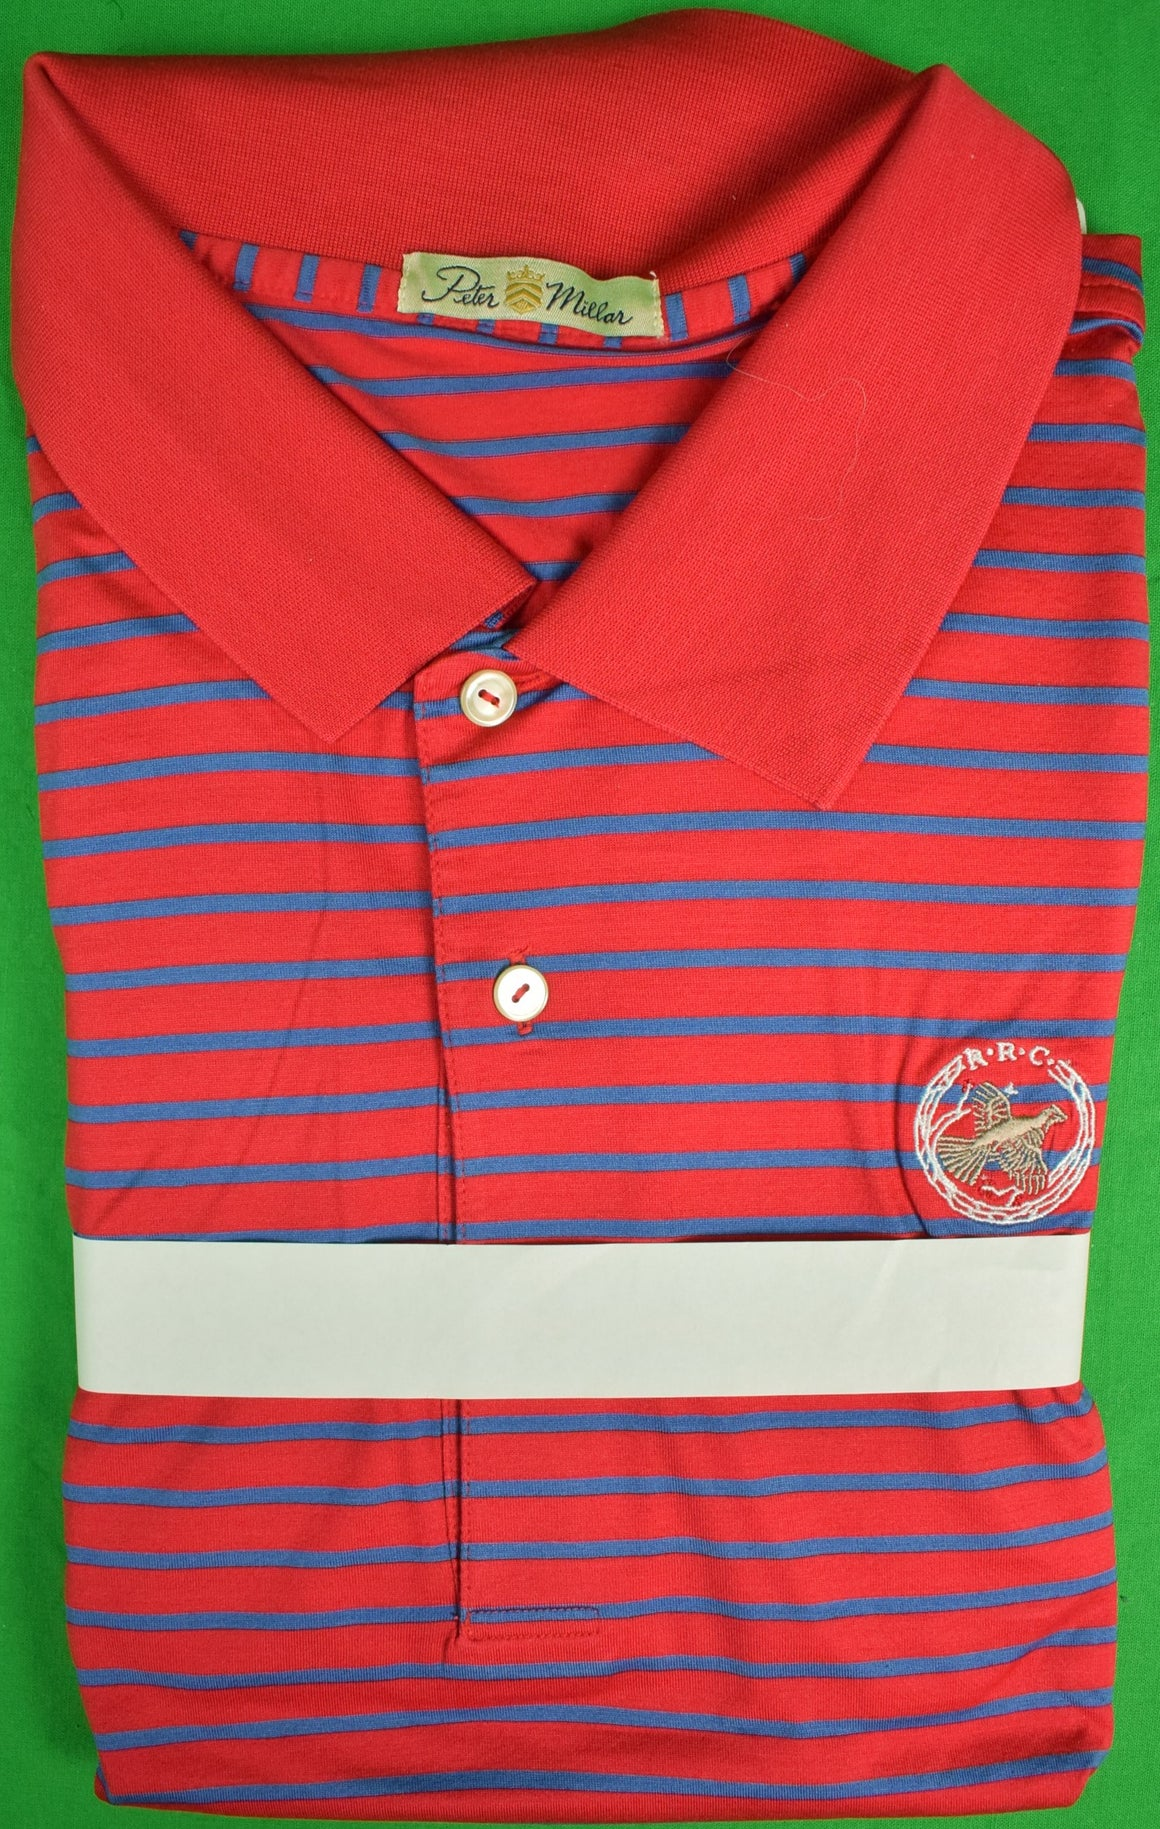 Peter Millar Red/ Blue Stripe Sport Shirt w/ Rolling Rock Club Logo Sz: XXL